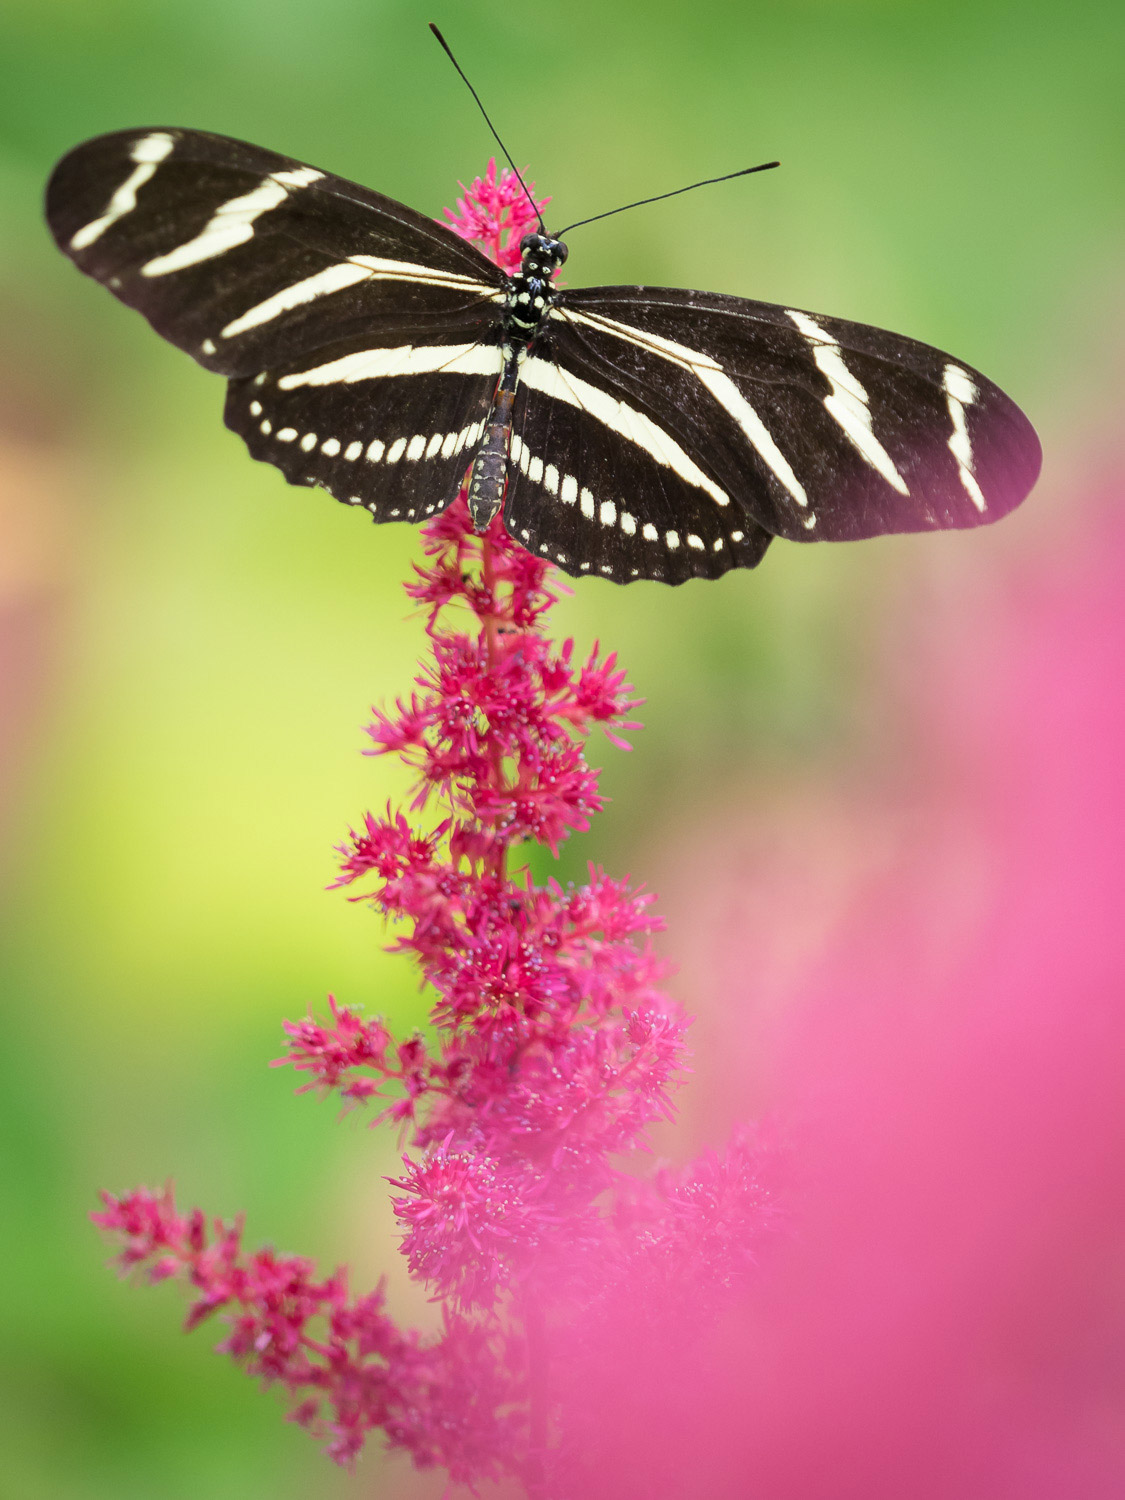 A black and white stripped butterfly on a pink flower